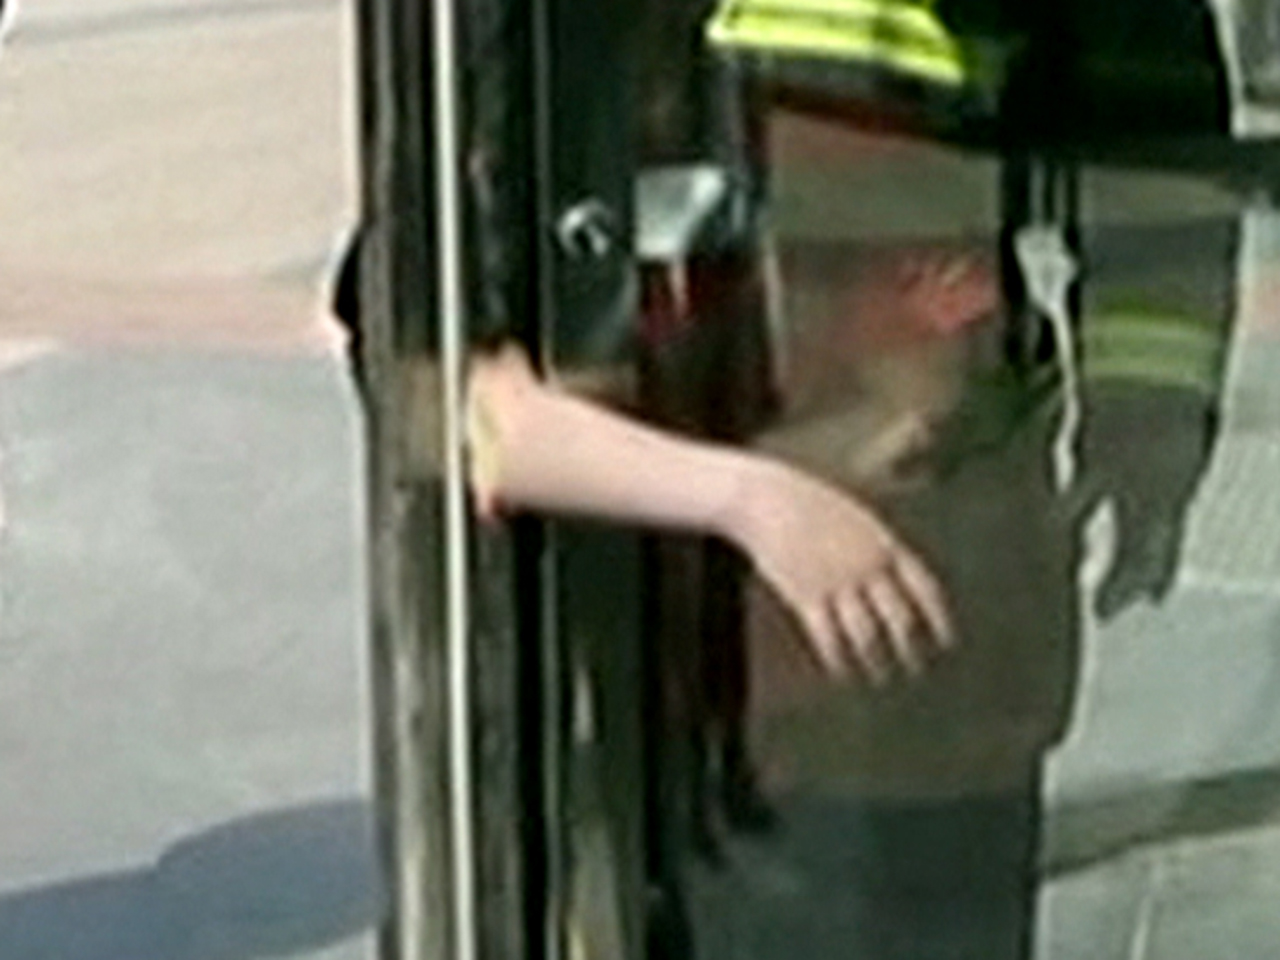 & Boy gets arm trapped in revolving door